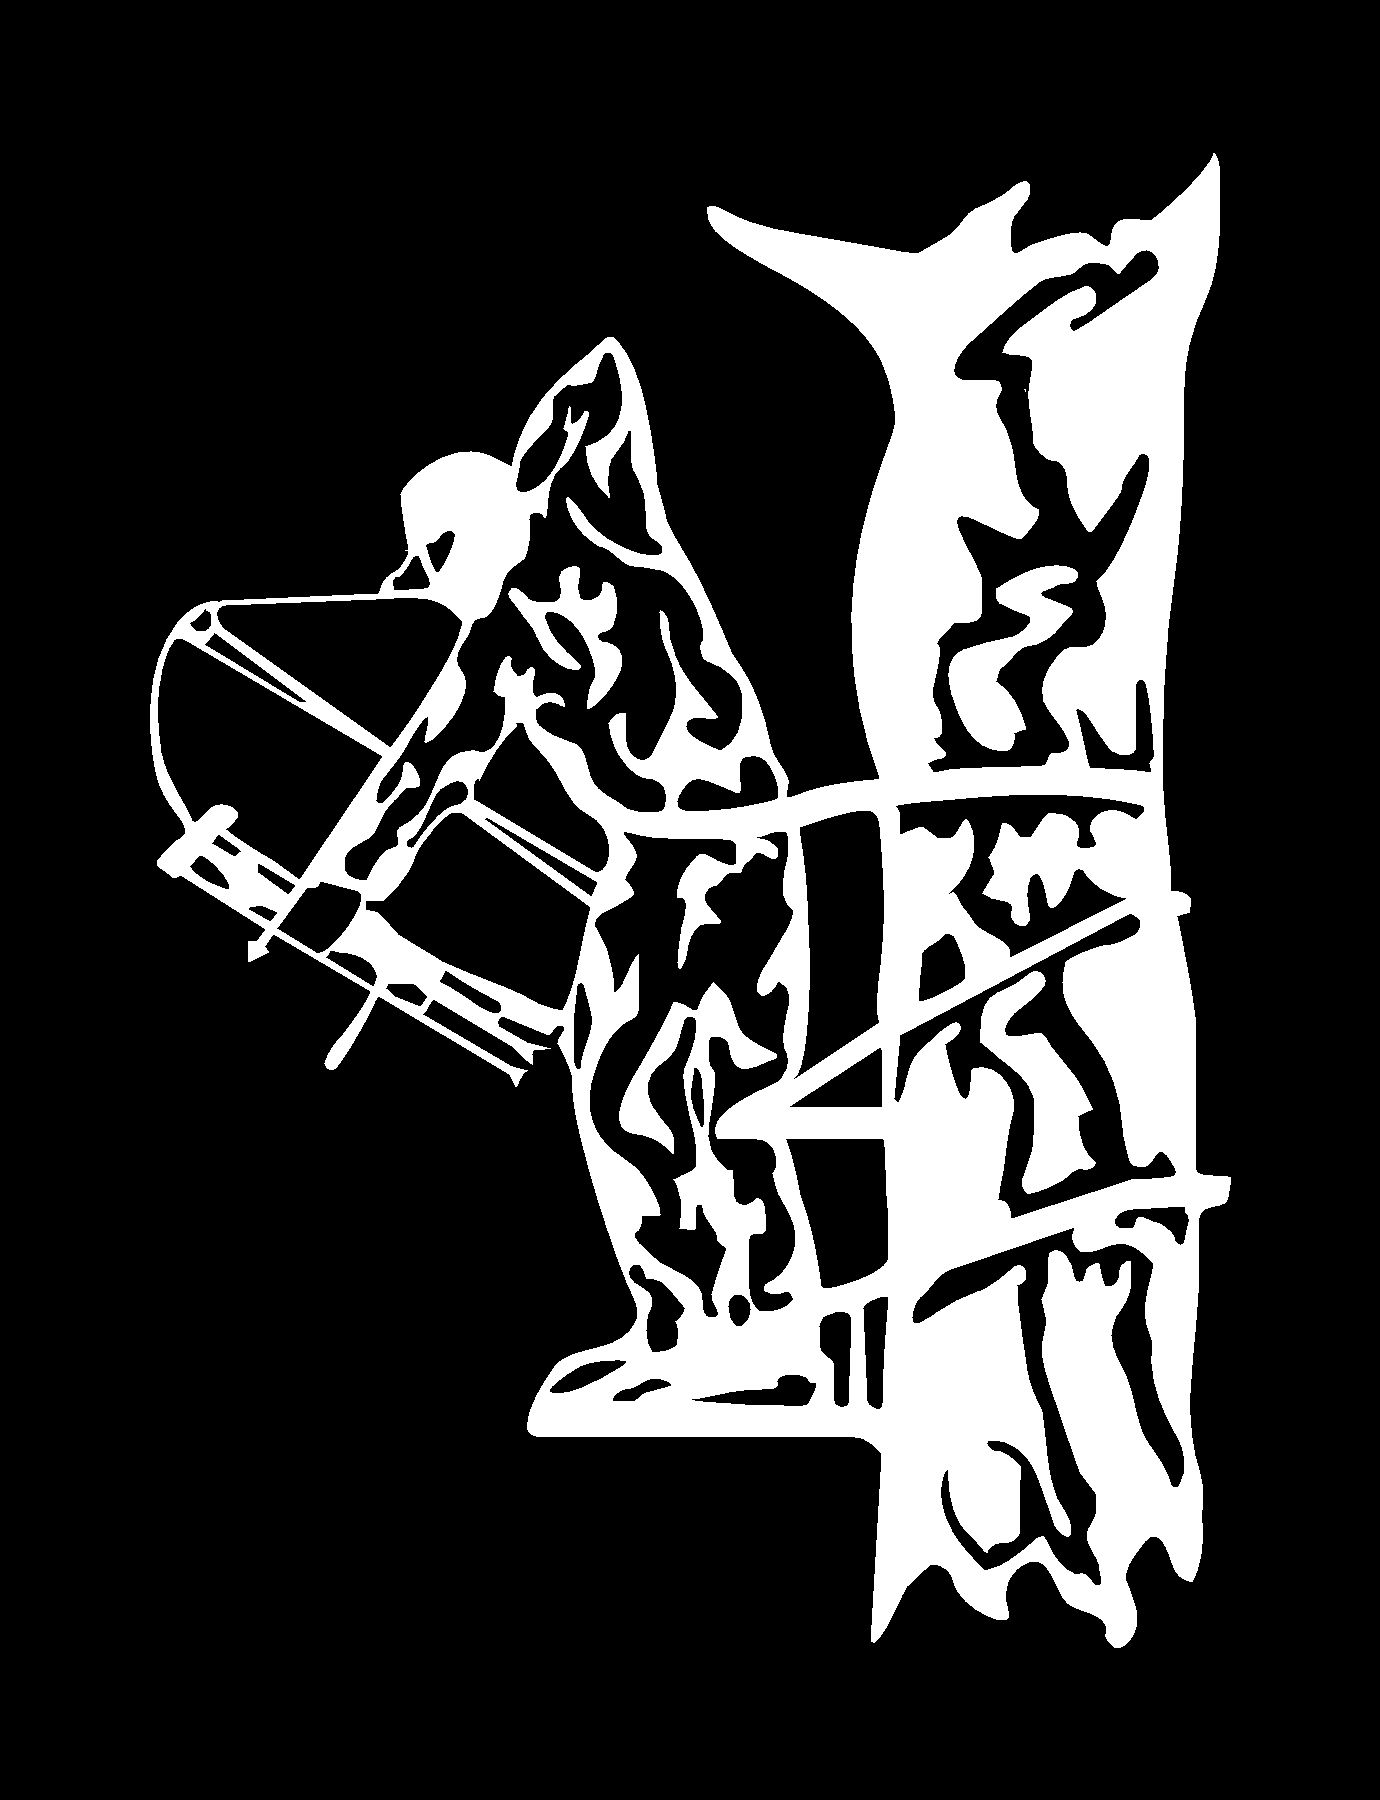 bow hunter - Google Search | Deer Hunting Silhouettes, Vectors ...